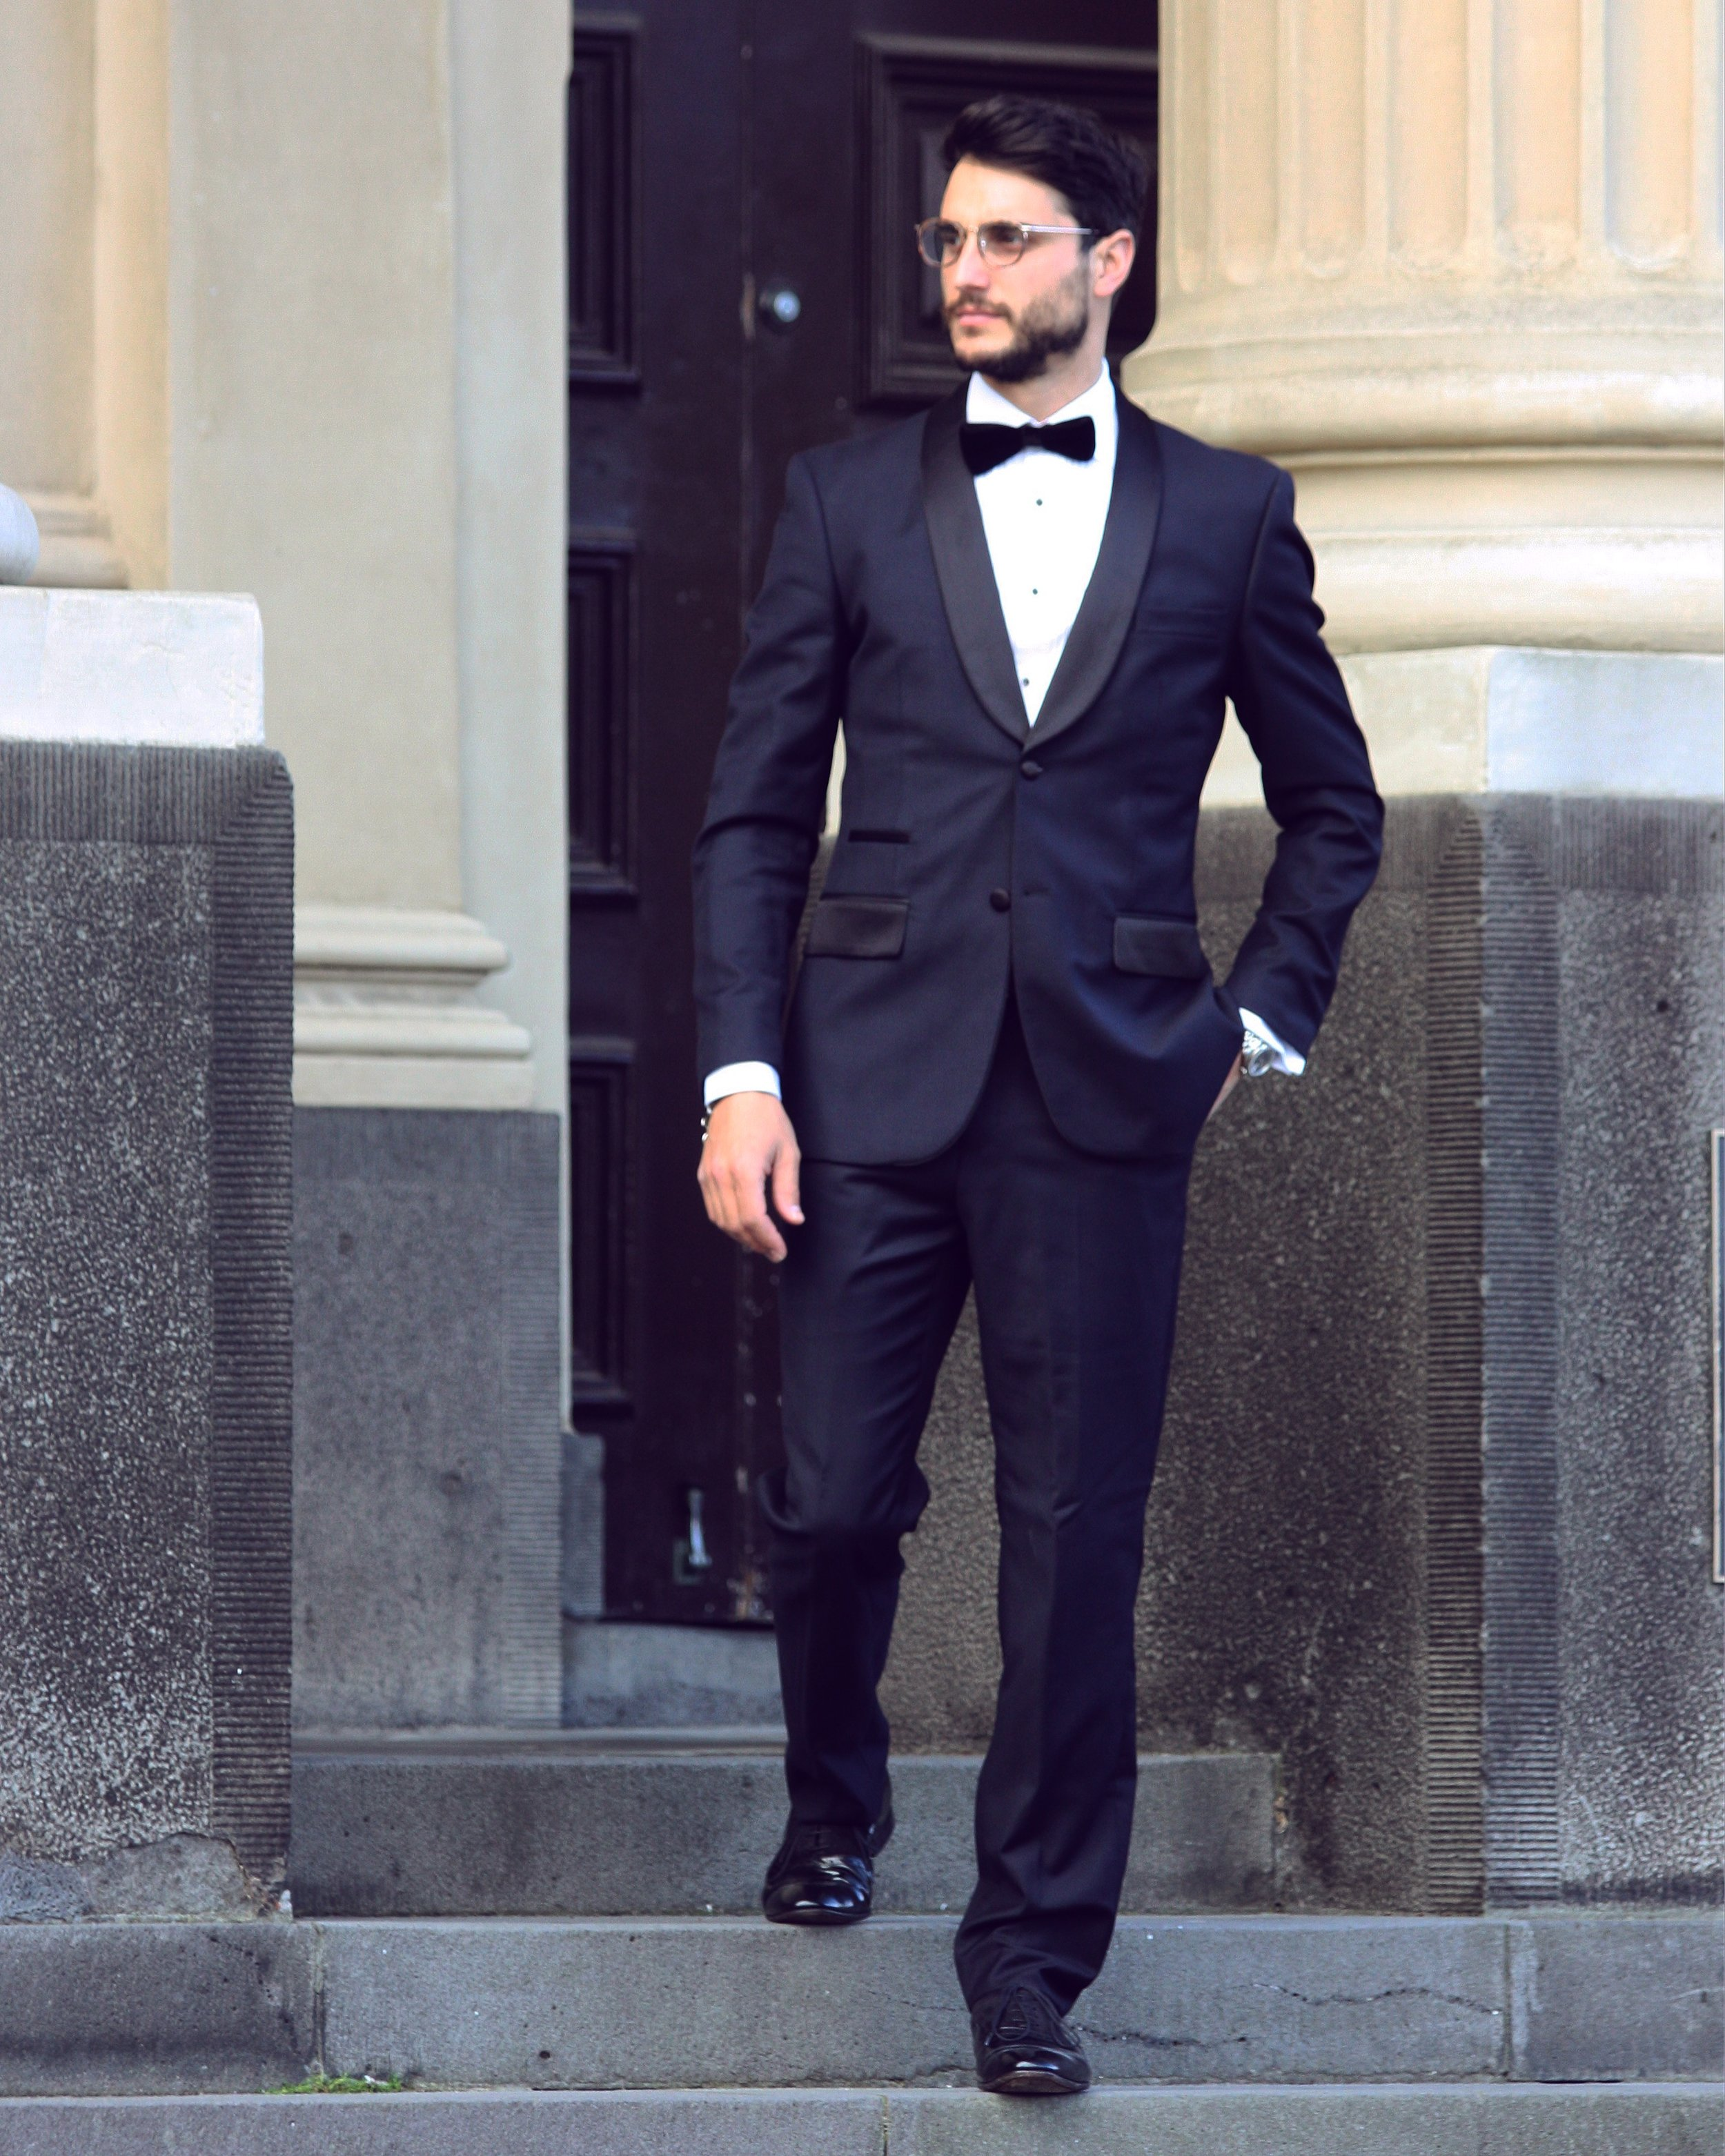 Classic Black Tie. Outfit by Soho Workshop